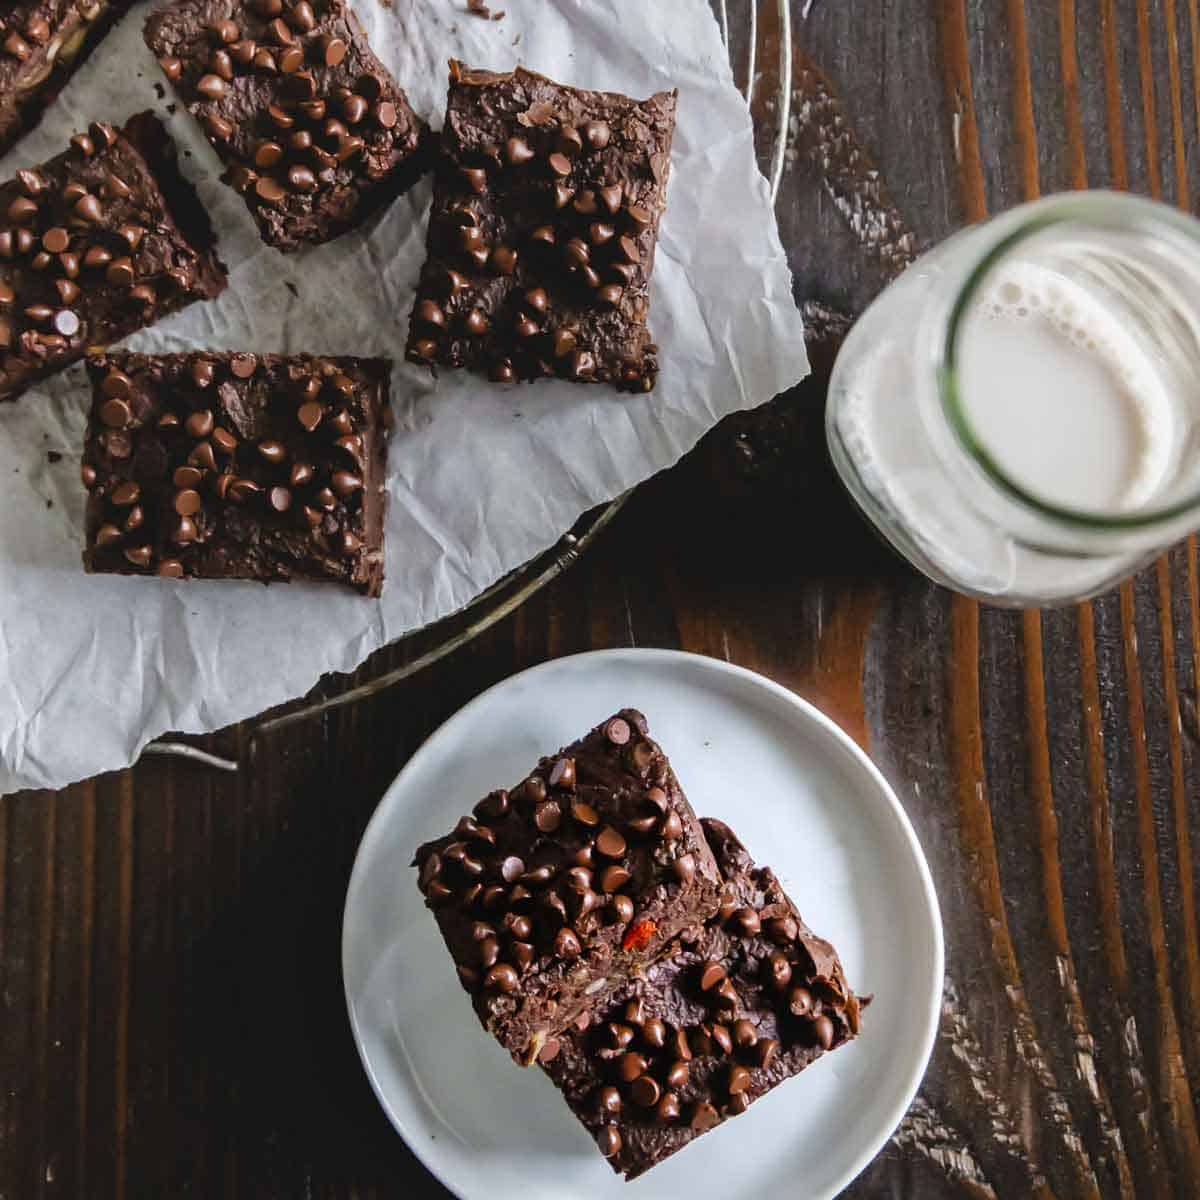 A simple black bean brownie recipe that's vegan and gluten-free, tastes just like chocolate fudge with healthy, nutritious ingredients.